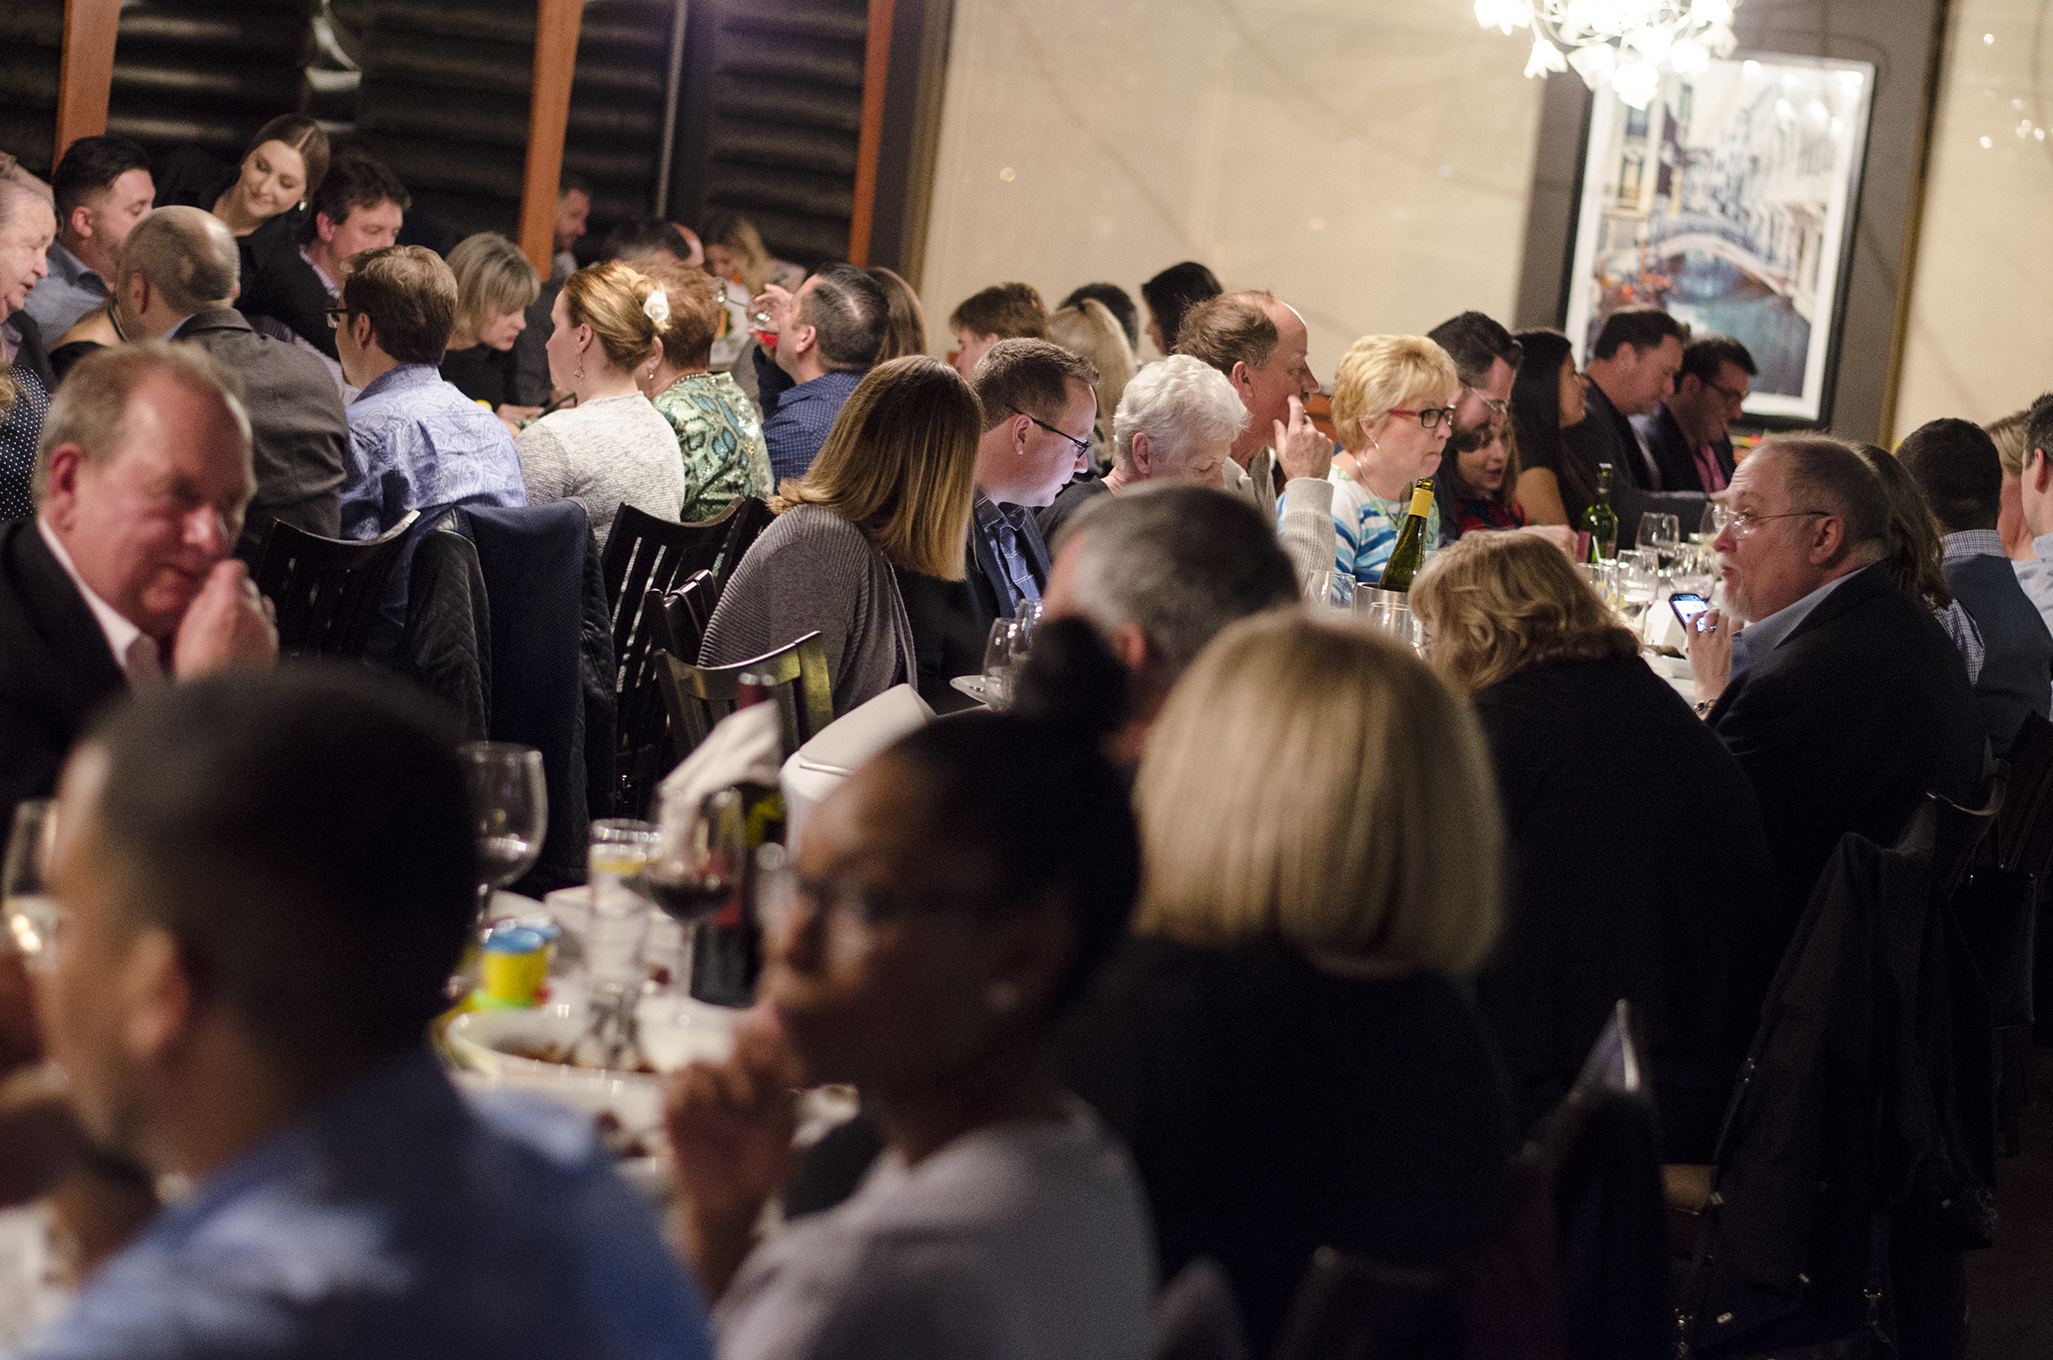 A packed evening at Mezzo Restaurant for Chef Michael Smith's visit to Windsor, Ontario.